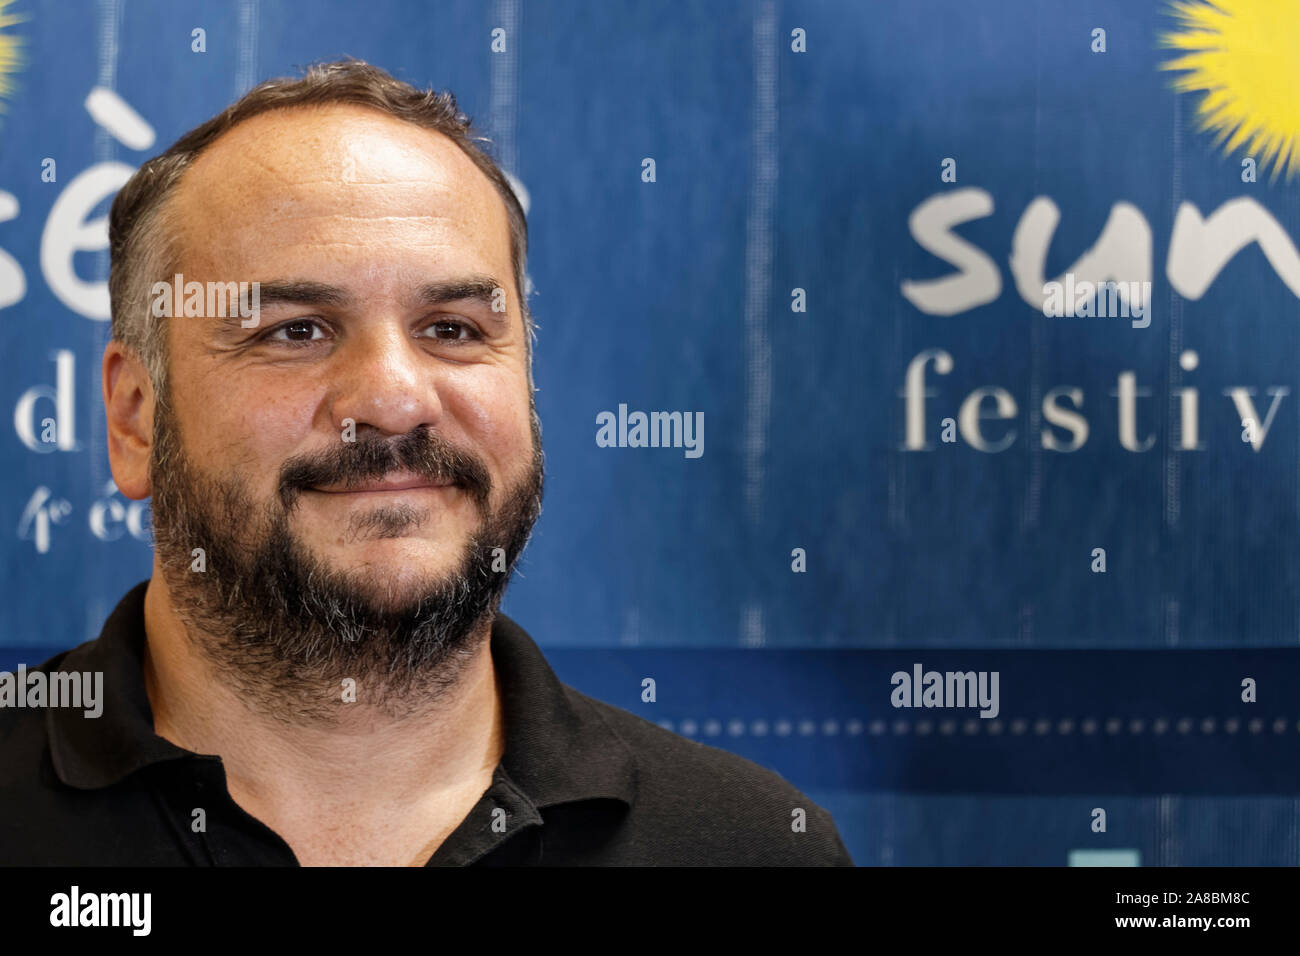 Sete France 5th July 2019 Francois Xavier Demaison Guest Of Honor Of Sunsete Festival Attends The Inauguration Of Sunsete Festival Stock Photo Alamy